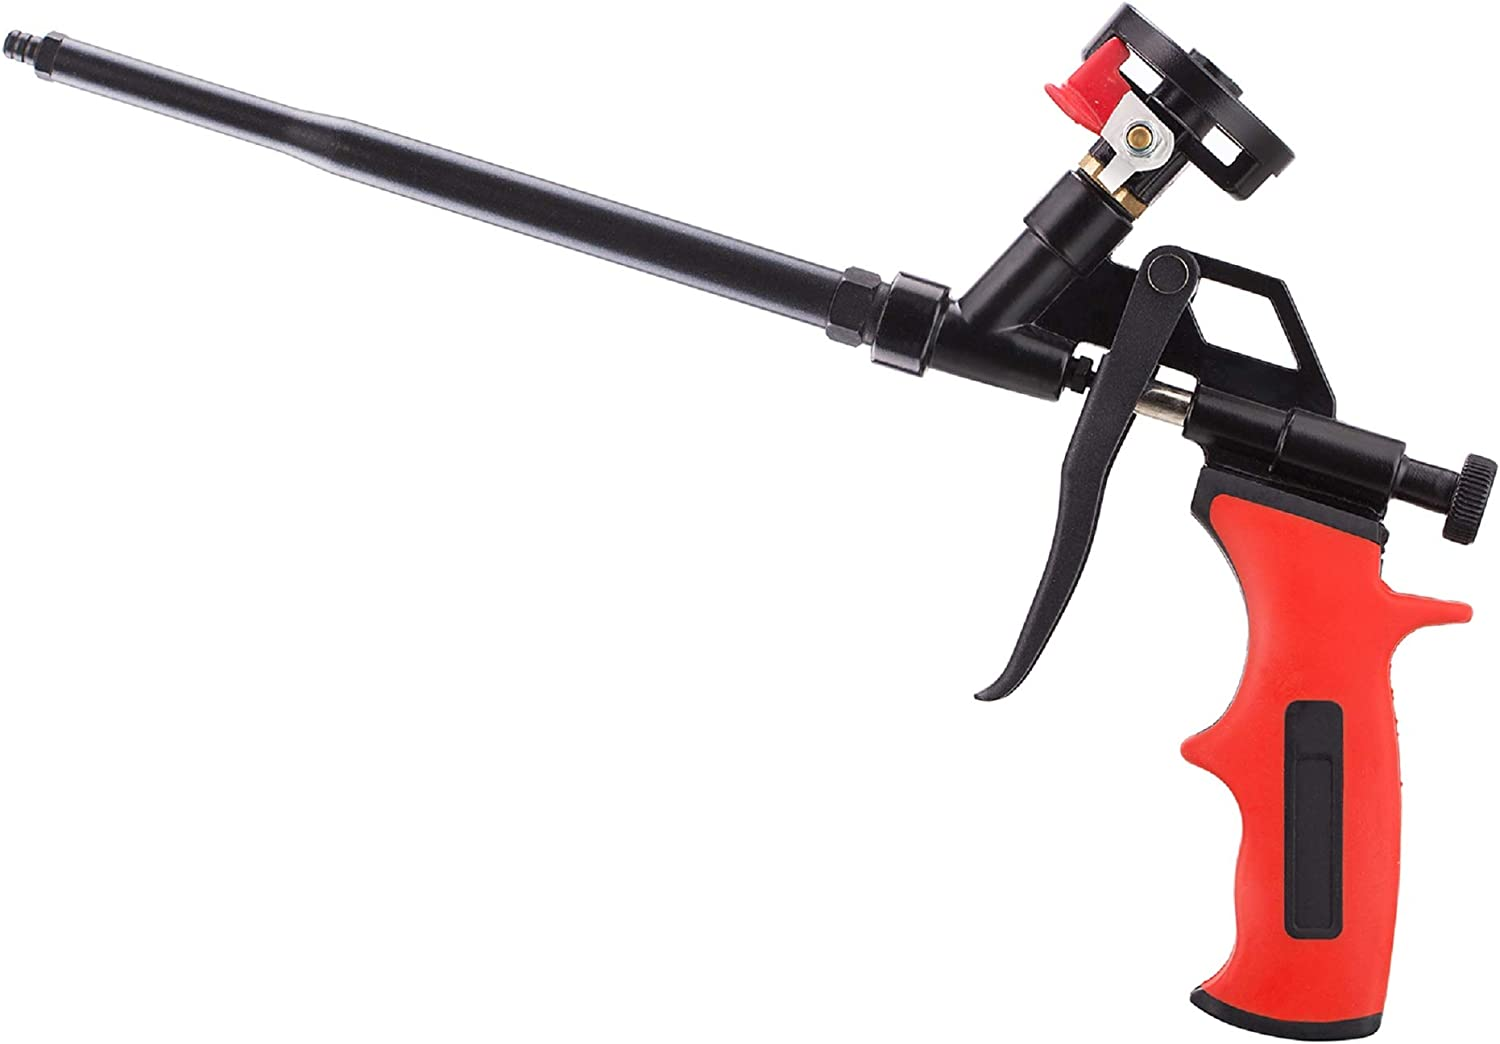 SocsPark Needn't Clean Foam Gun, Pu Expanding Foaming Gun, Upgrade Caulking Gun, Heavy Duty Spray Foam Gun, Mental Body Covered with PTFE, Suitable for Caulking, Filling, Sealing, Home and Office Use